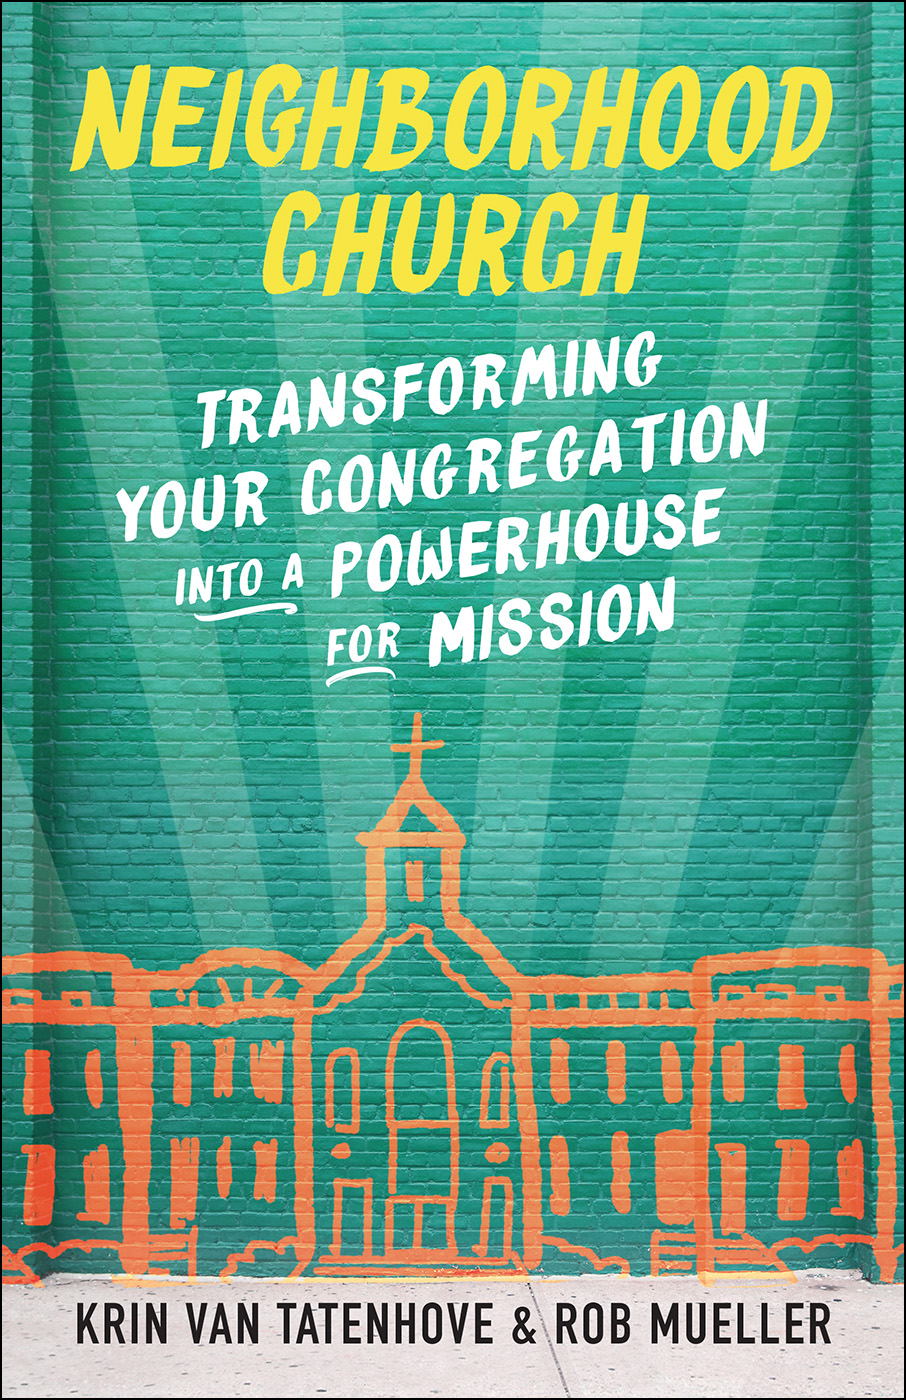 book cover - neighborhood church